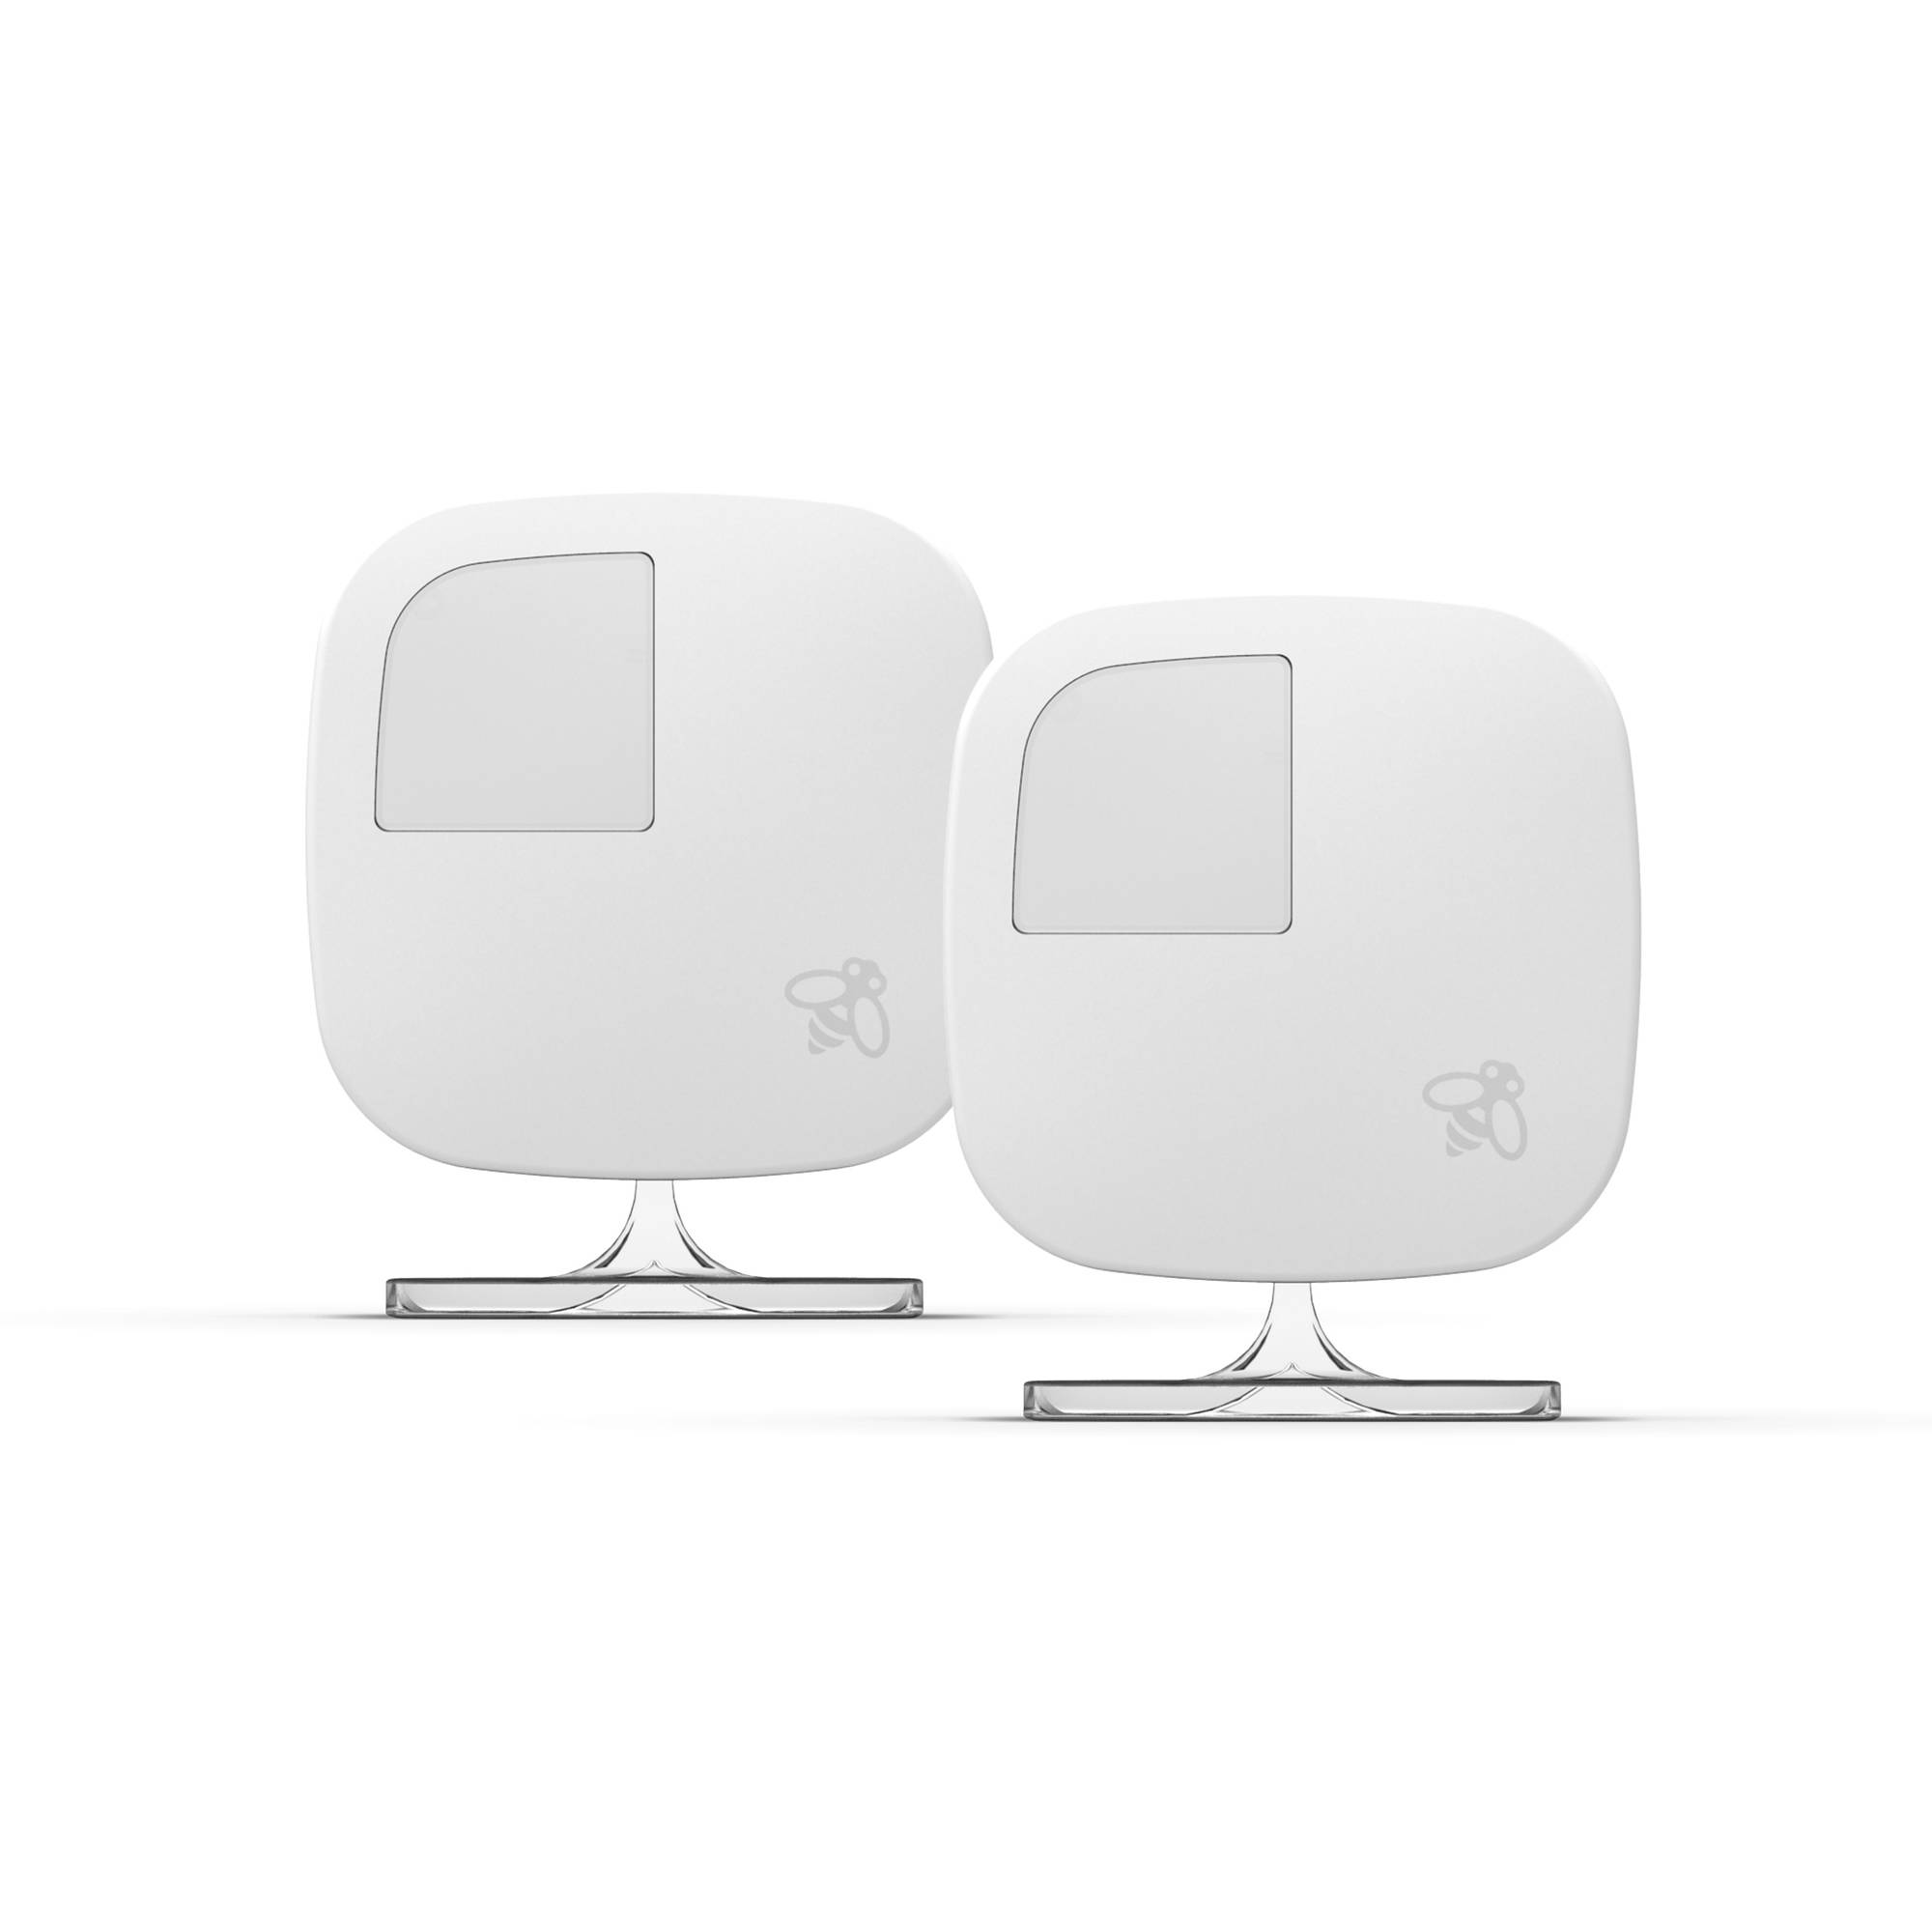 ecobee Smart Room Sensor, No Hub Required, 2 Pack